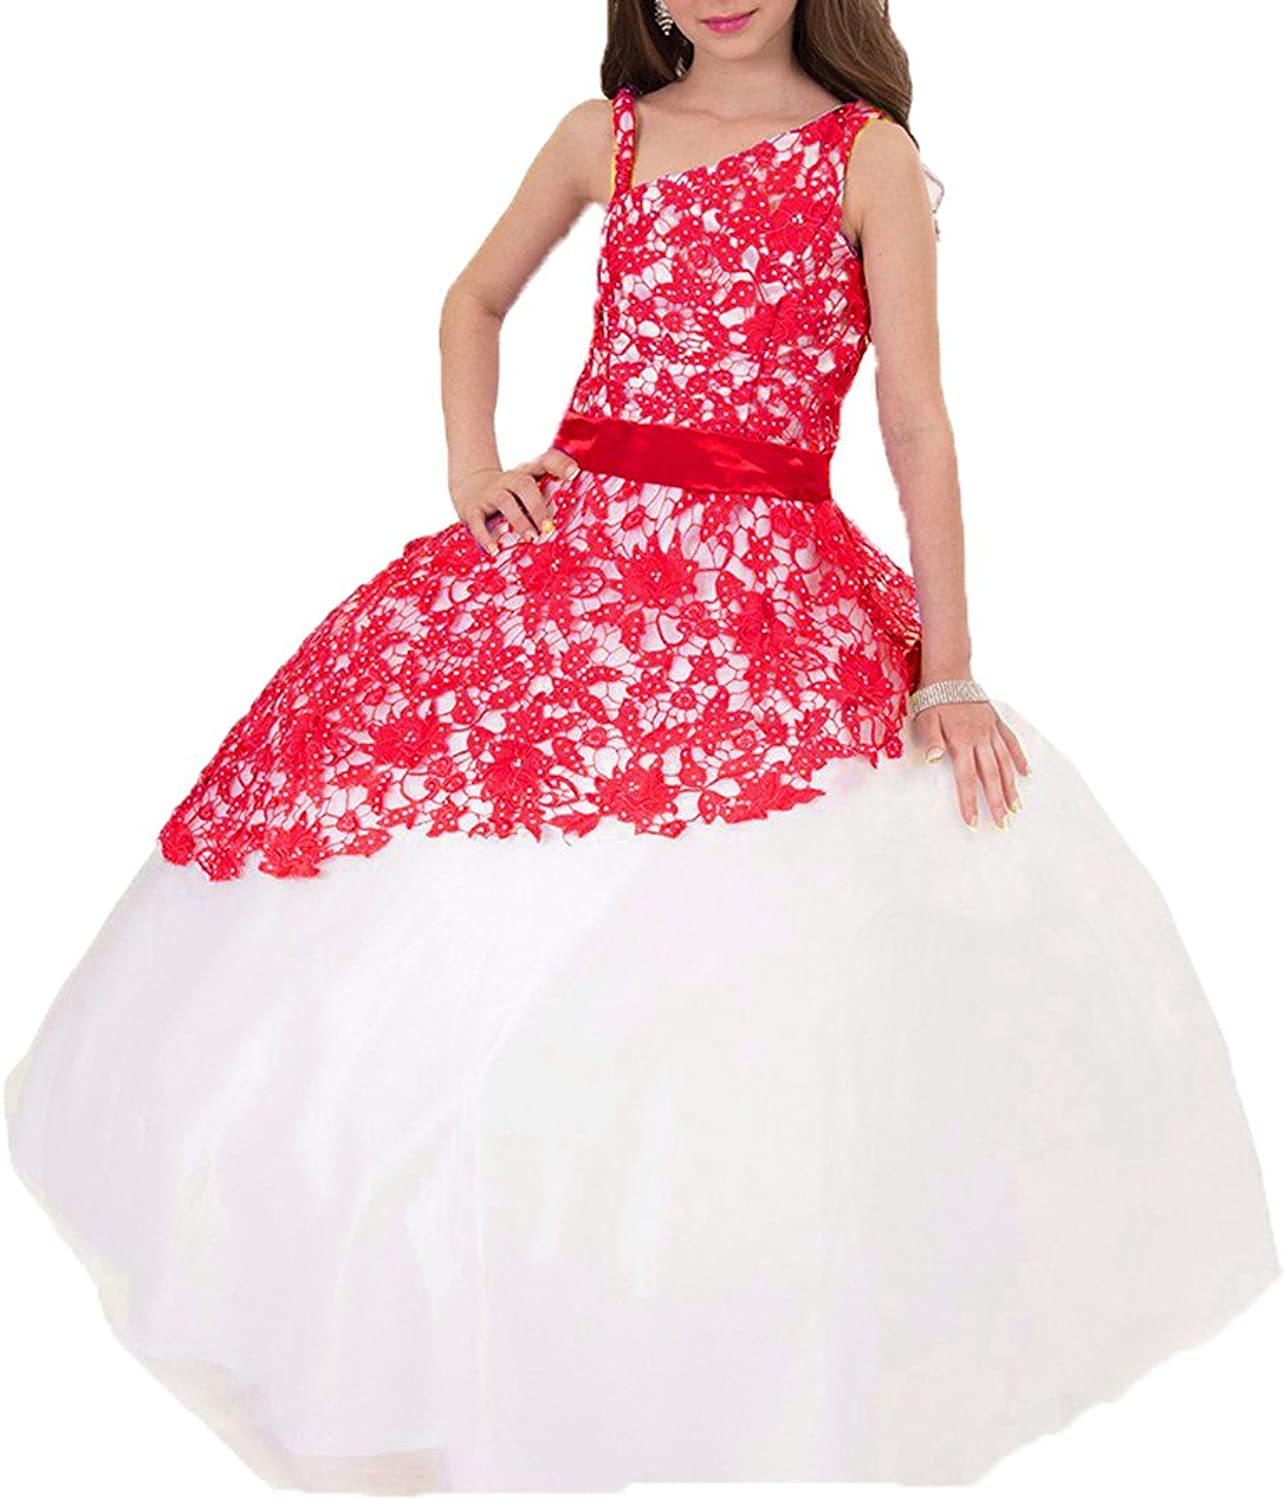 DKBridal Girl's One Shoulder Lace Flower Girl Dresses Tulle Pageant Ball Gown